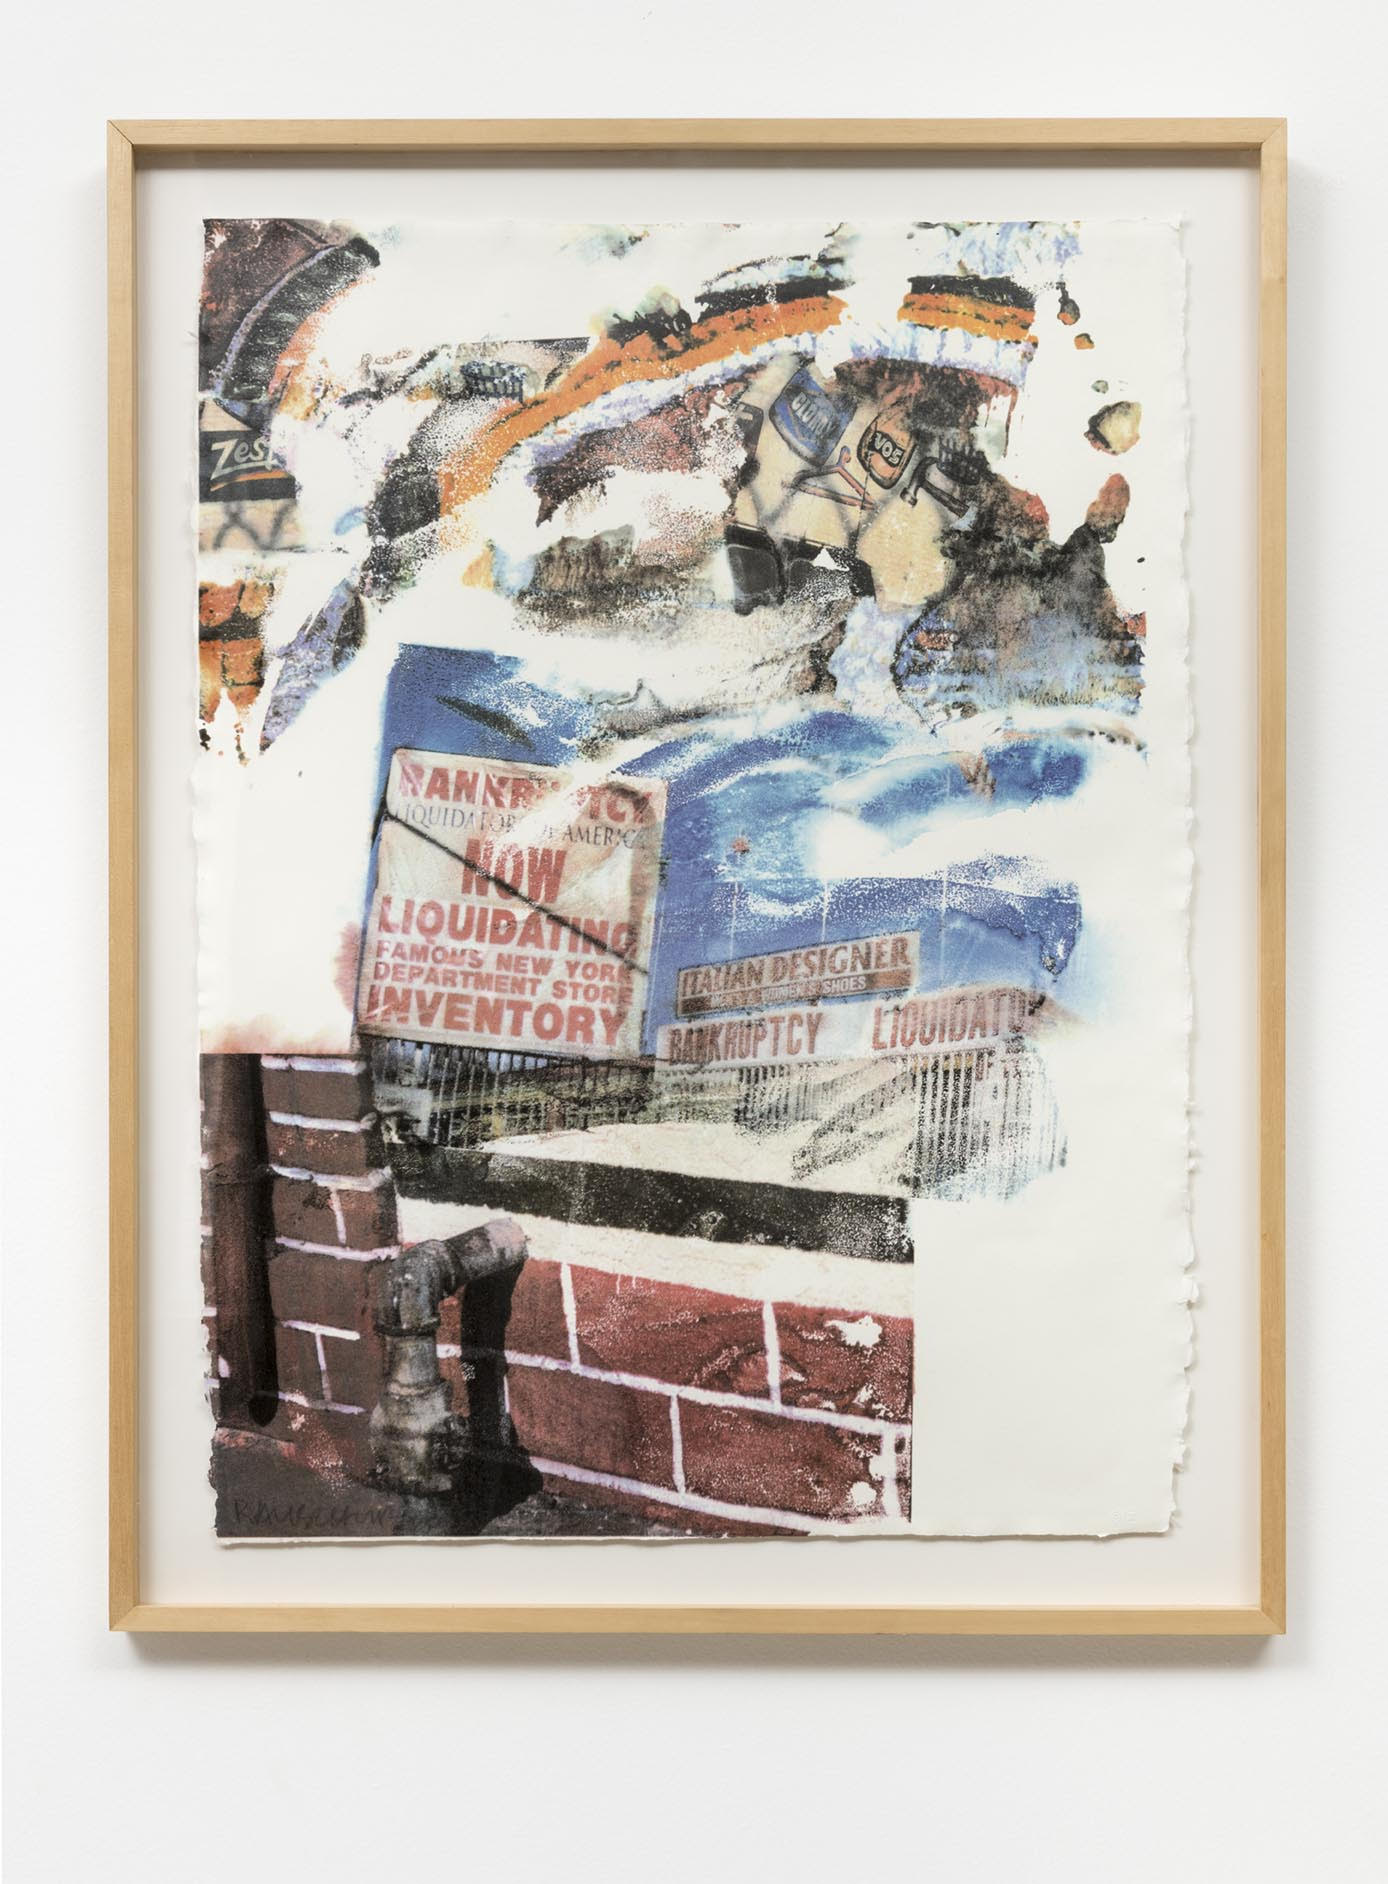 Robert Rauschenberg,  LA Uncovered #6,  1998,  serigrafia em cores  [c olor screenprint ]   81 x 60 cm